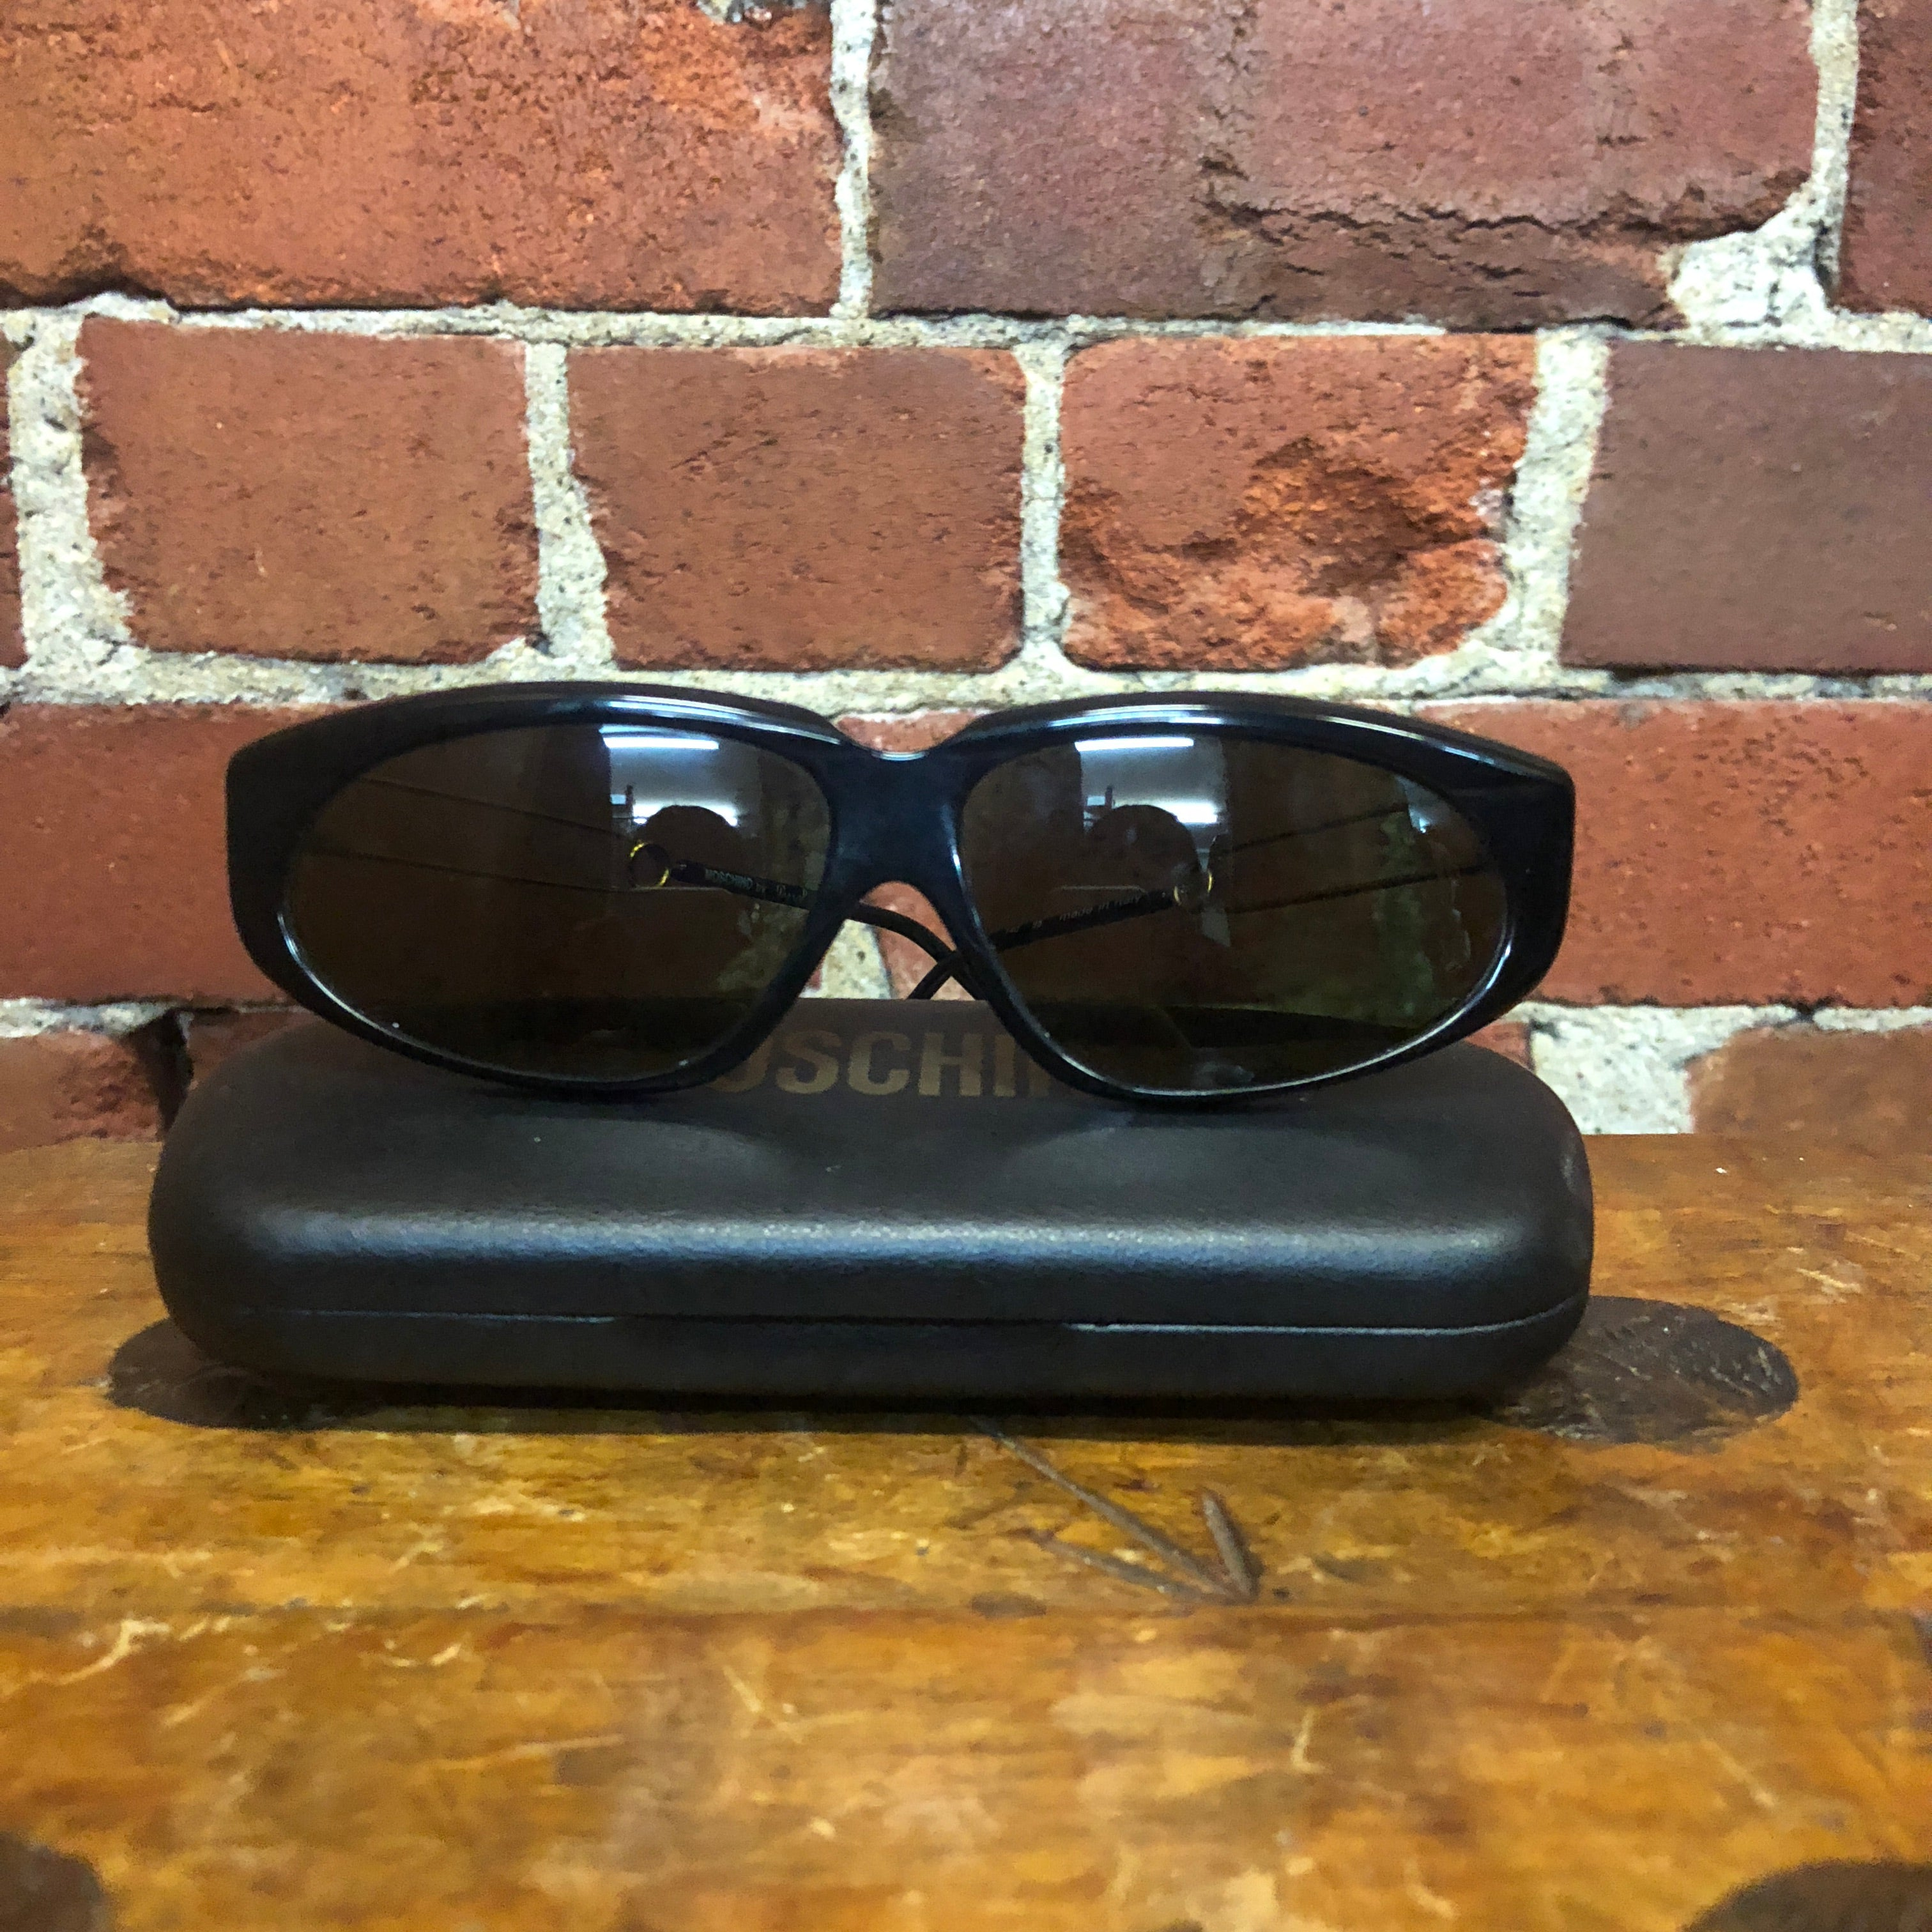 MOSCHINO by PERSOL 1980s rare safety pin side sunglasses